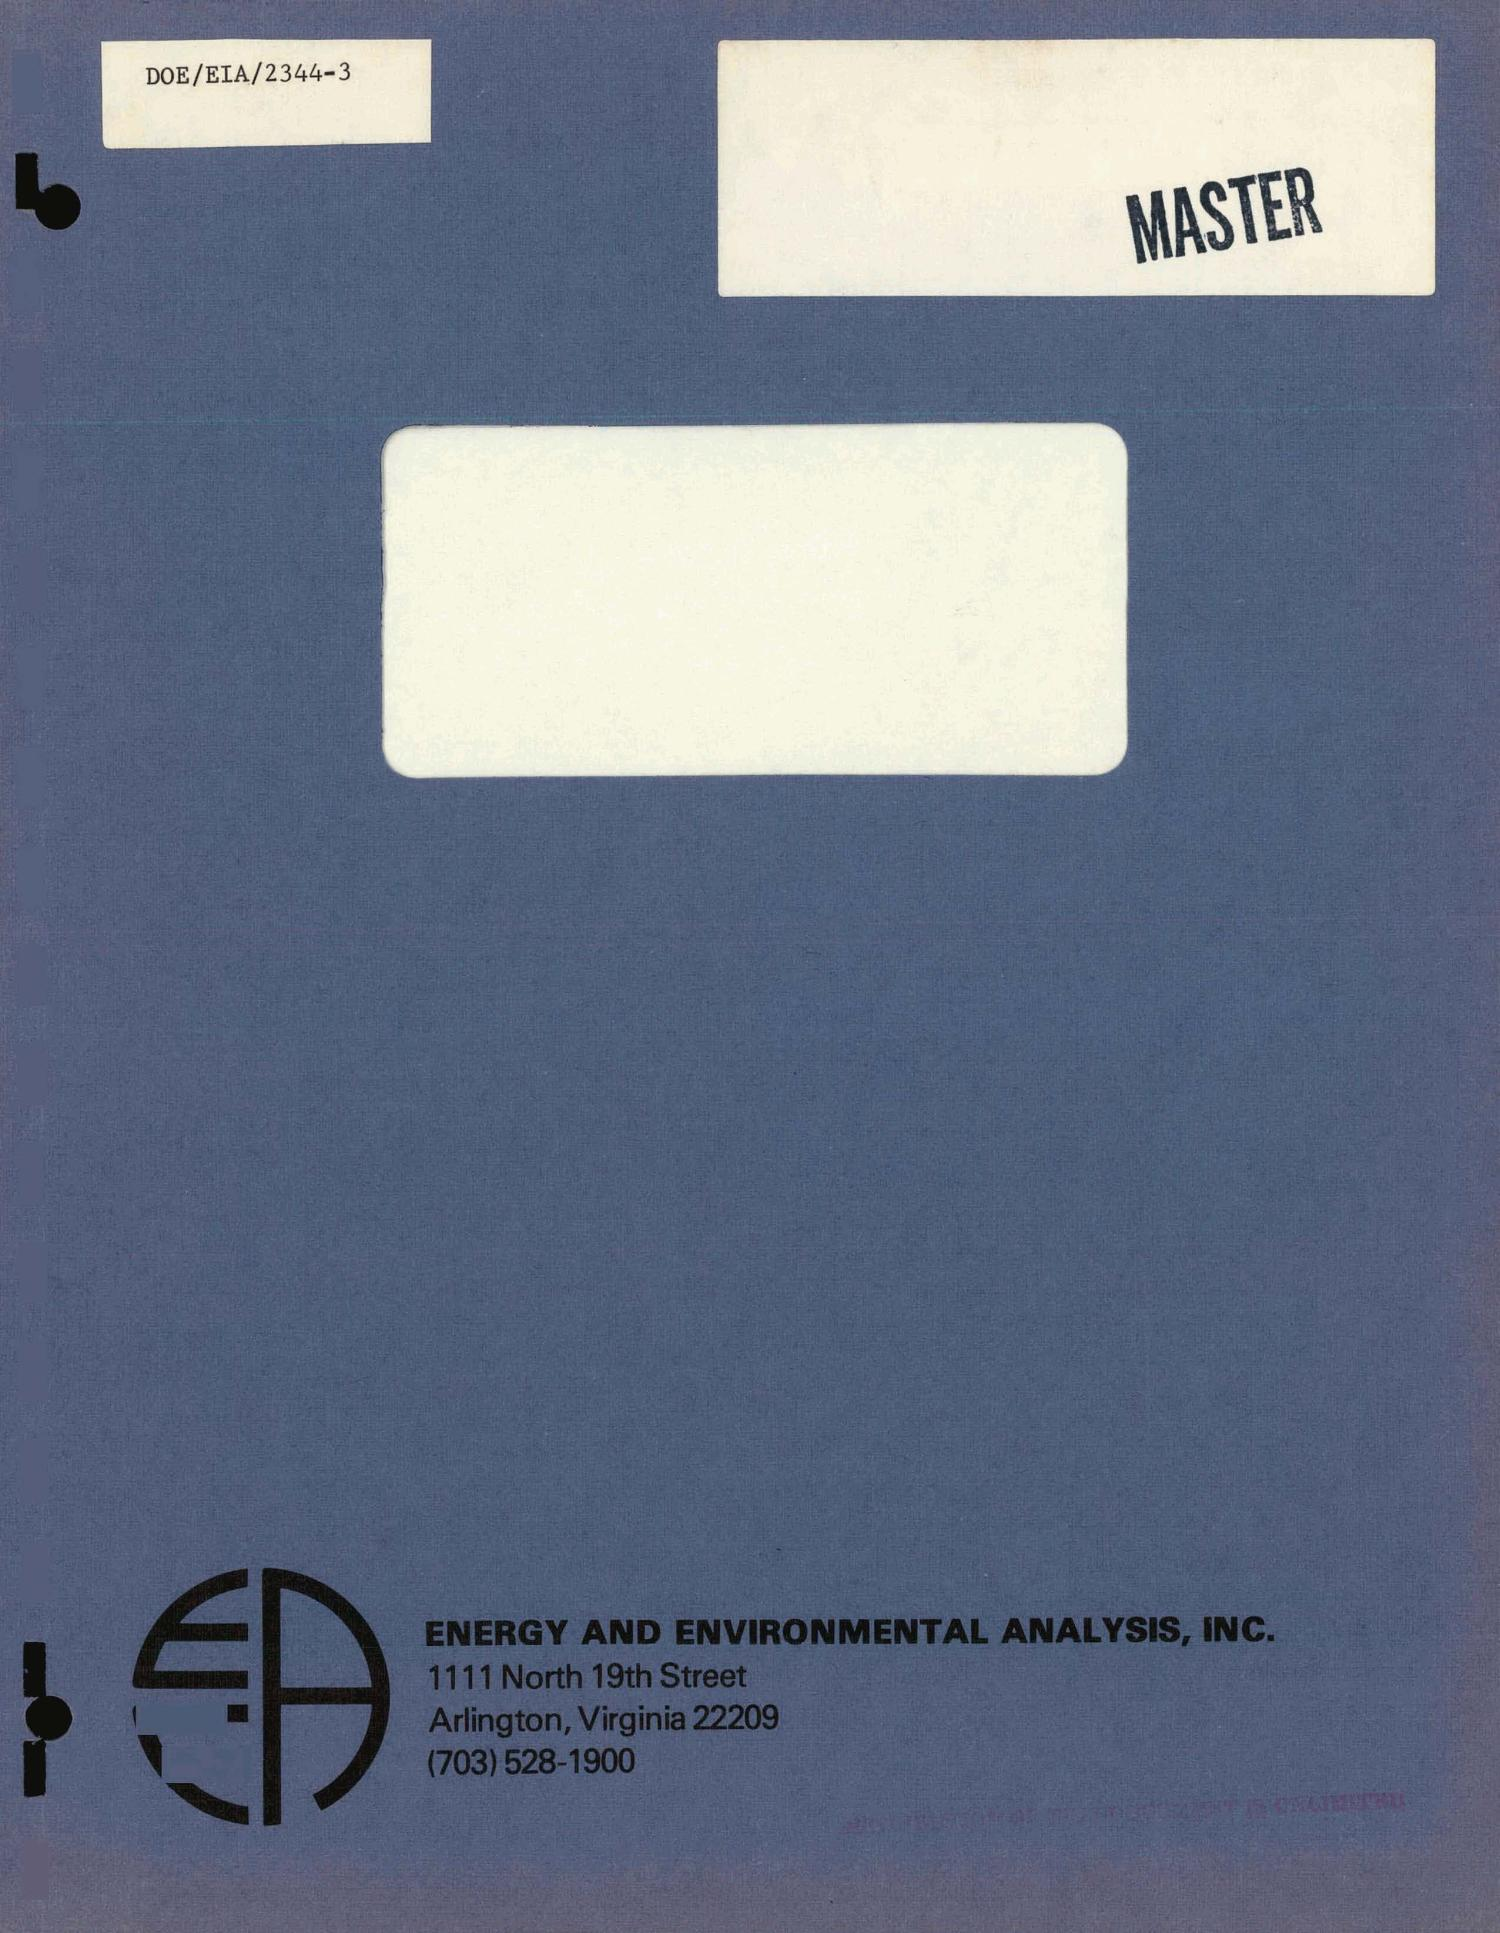 Industrial Sector Technology Use Model (ISTUM): industrial energy use in the United States, 1974-2000. Volume 2. Results                                                                                                      [Sequence #]: 1 of 119